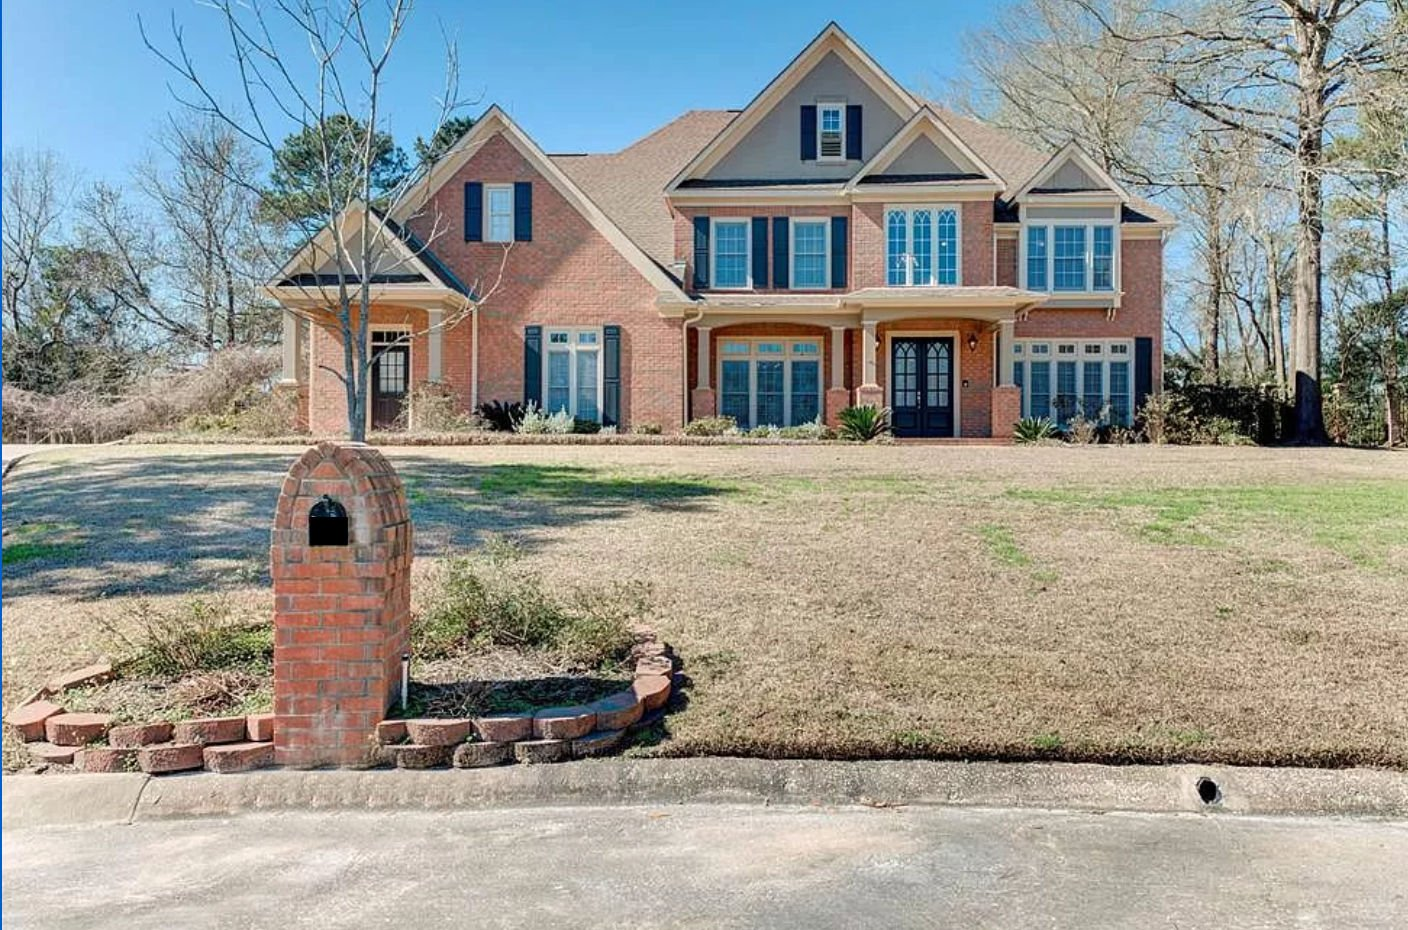 Two story traditional brick home